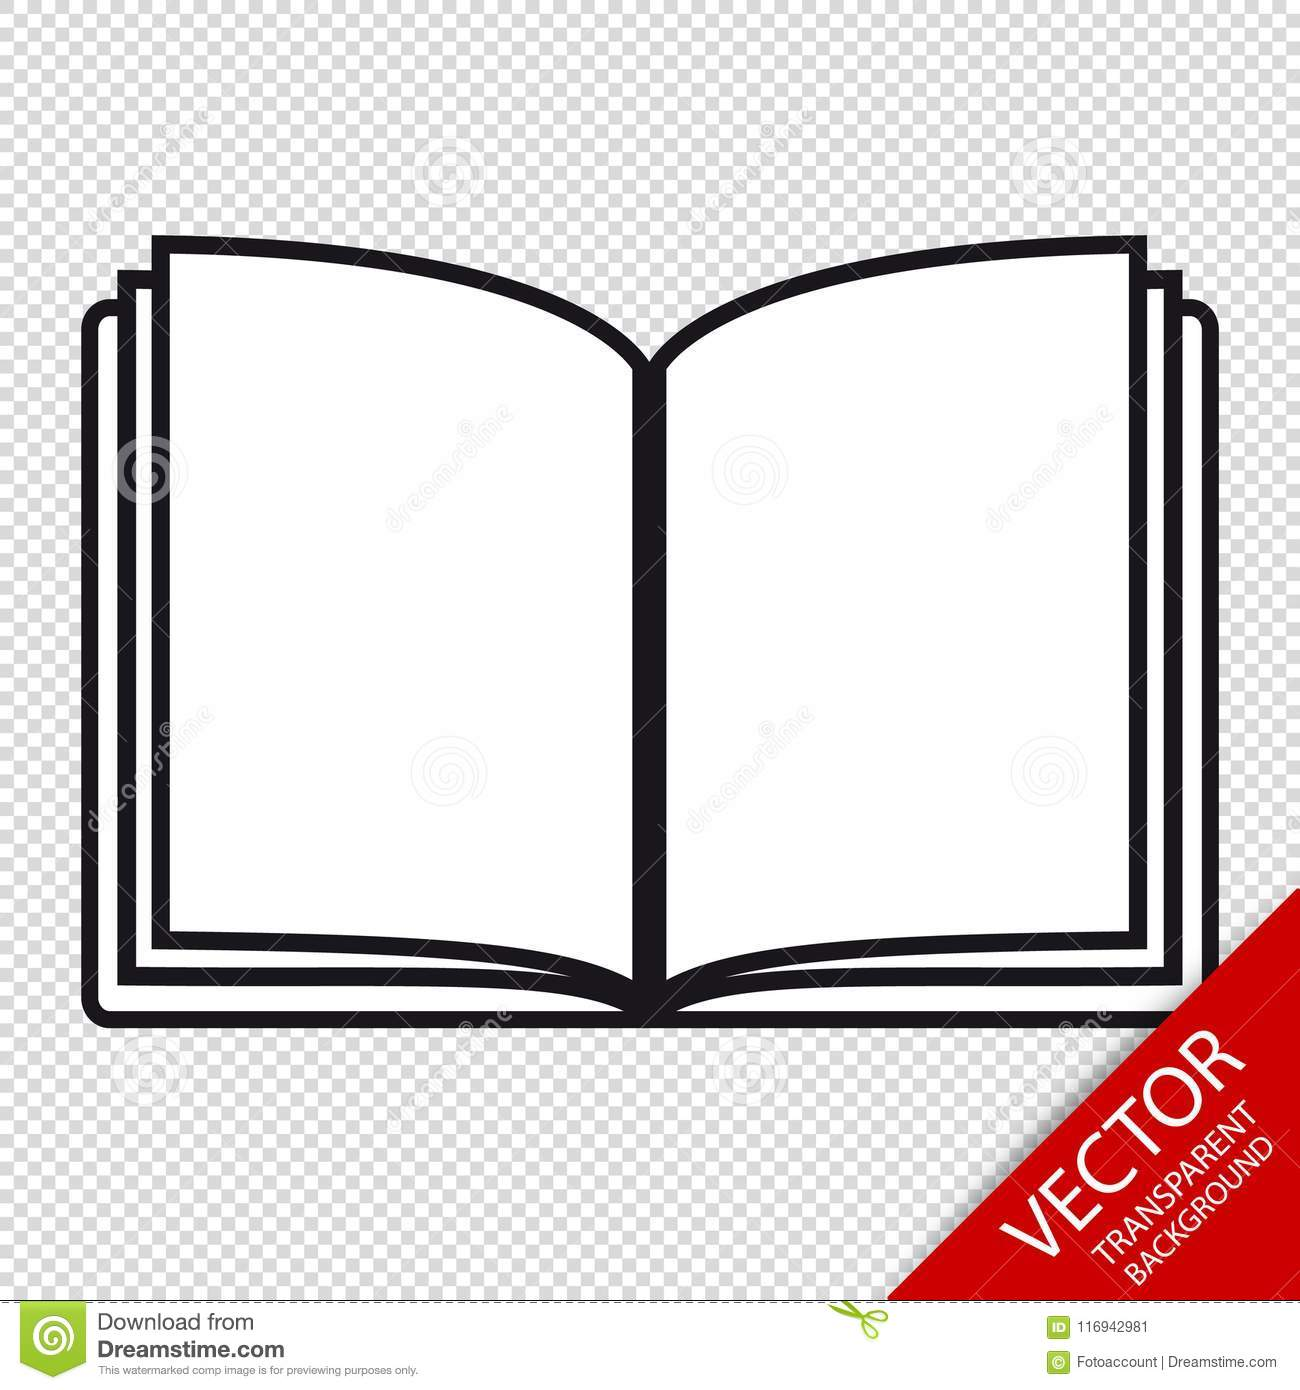 open book editable vector icon isolated on transparent